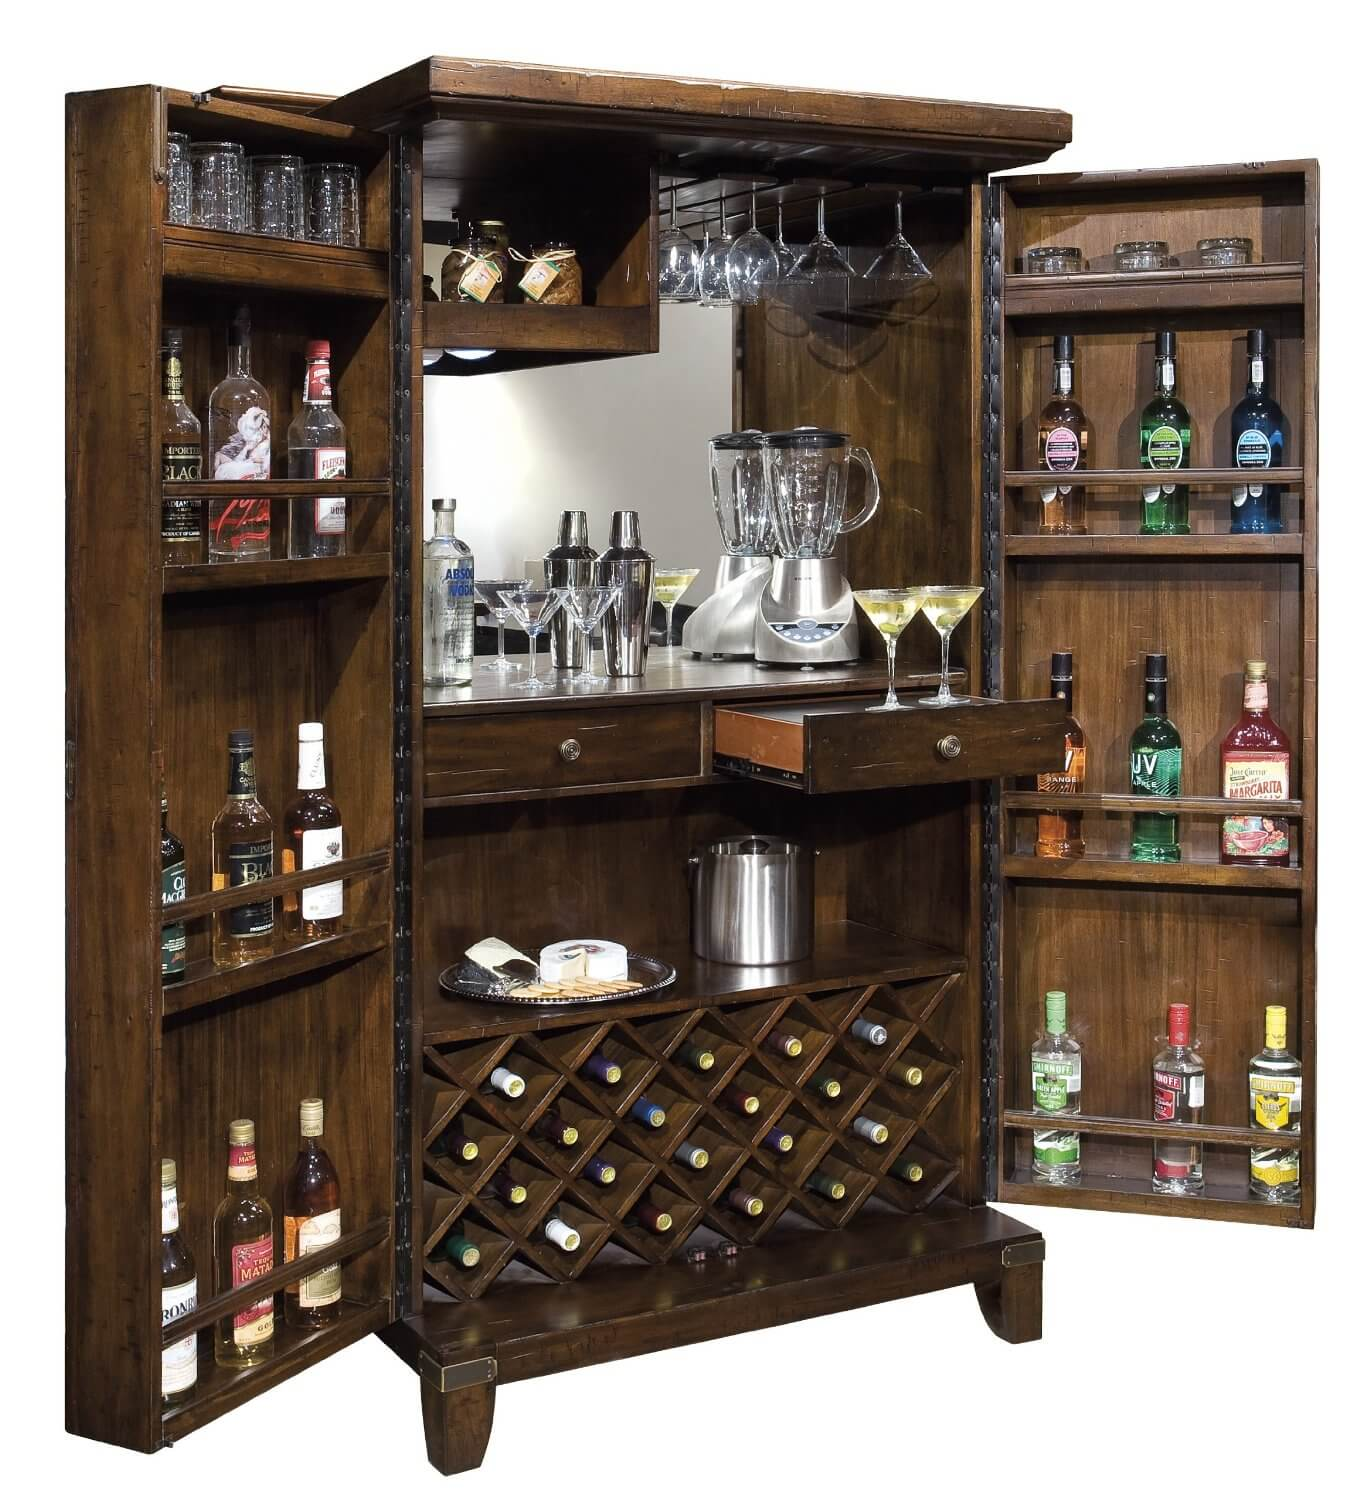 41 custom luxury wine cellar designs for Bar at home furniture